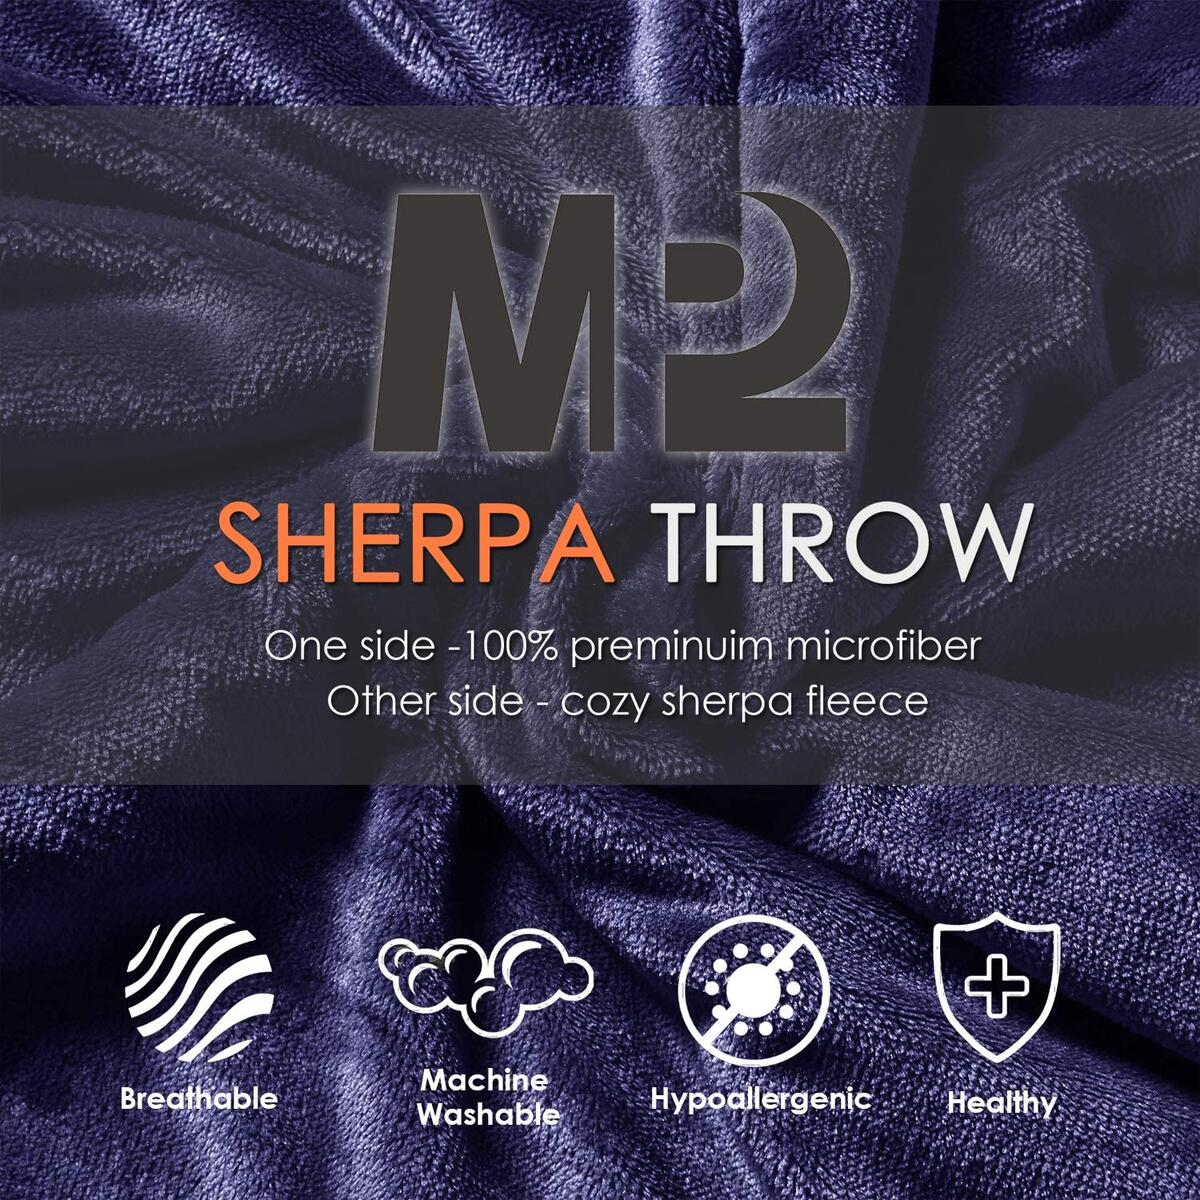 Cozy Sherpa Throw Travel Blanket | Fuzzy Soft Plush Flannel Blanket for Sofa, Couch, Bed, Outdoor - 50x60 Inches, Navy